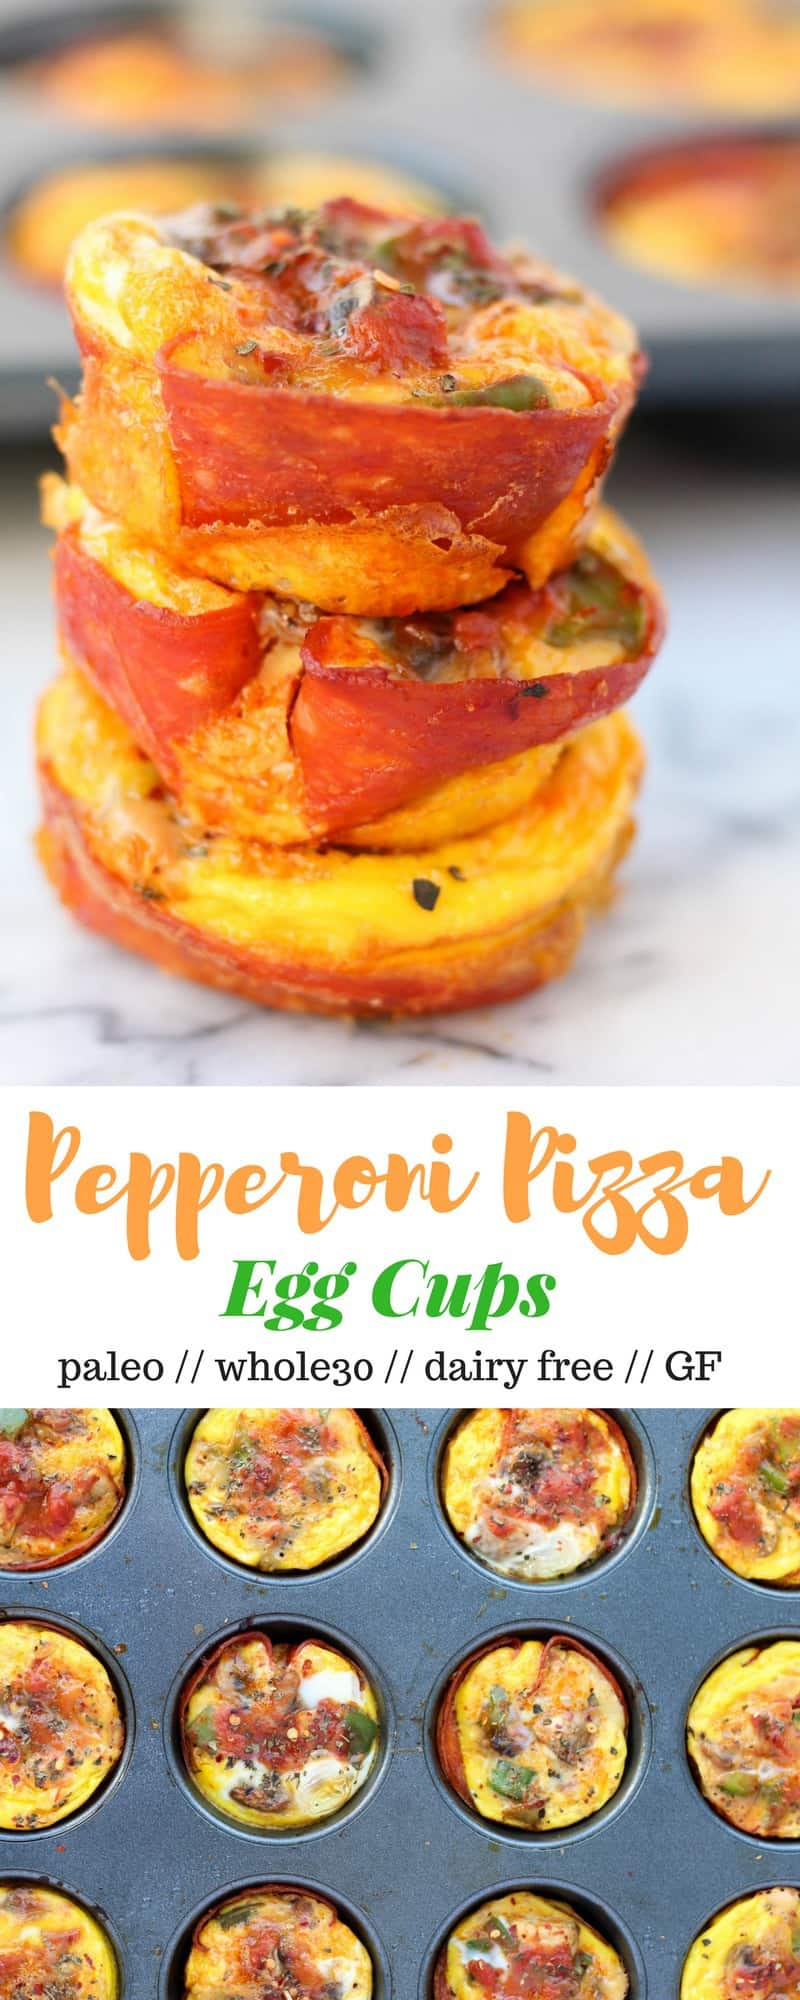 Pepperoni Pizza Egg Cups take the flavors of pizza and make it into a paleo and Whole30 approved breakfast, great for meal prep or breakfast on the go! - Eat the Gains